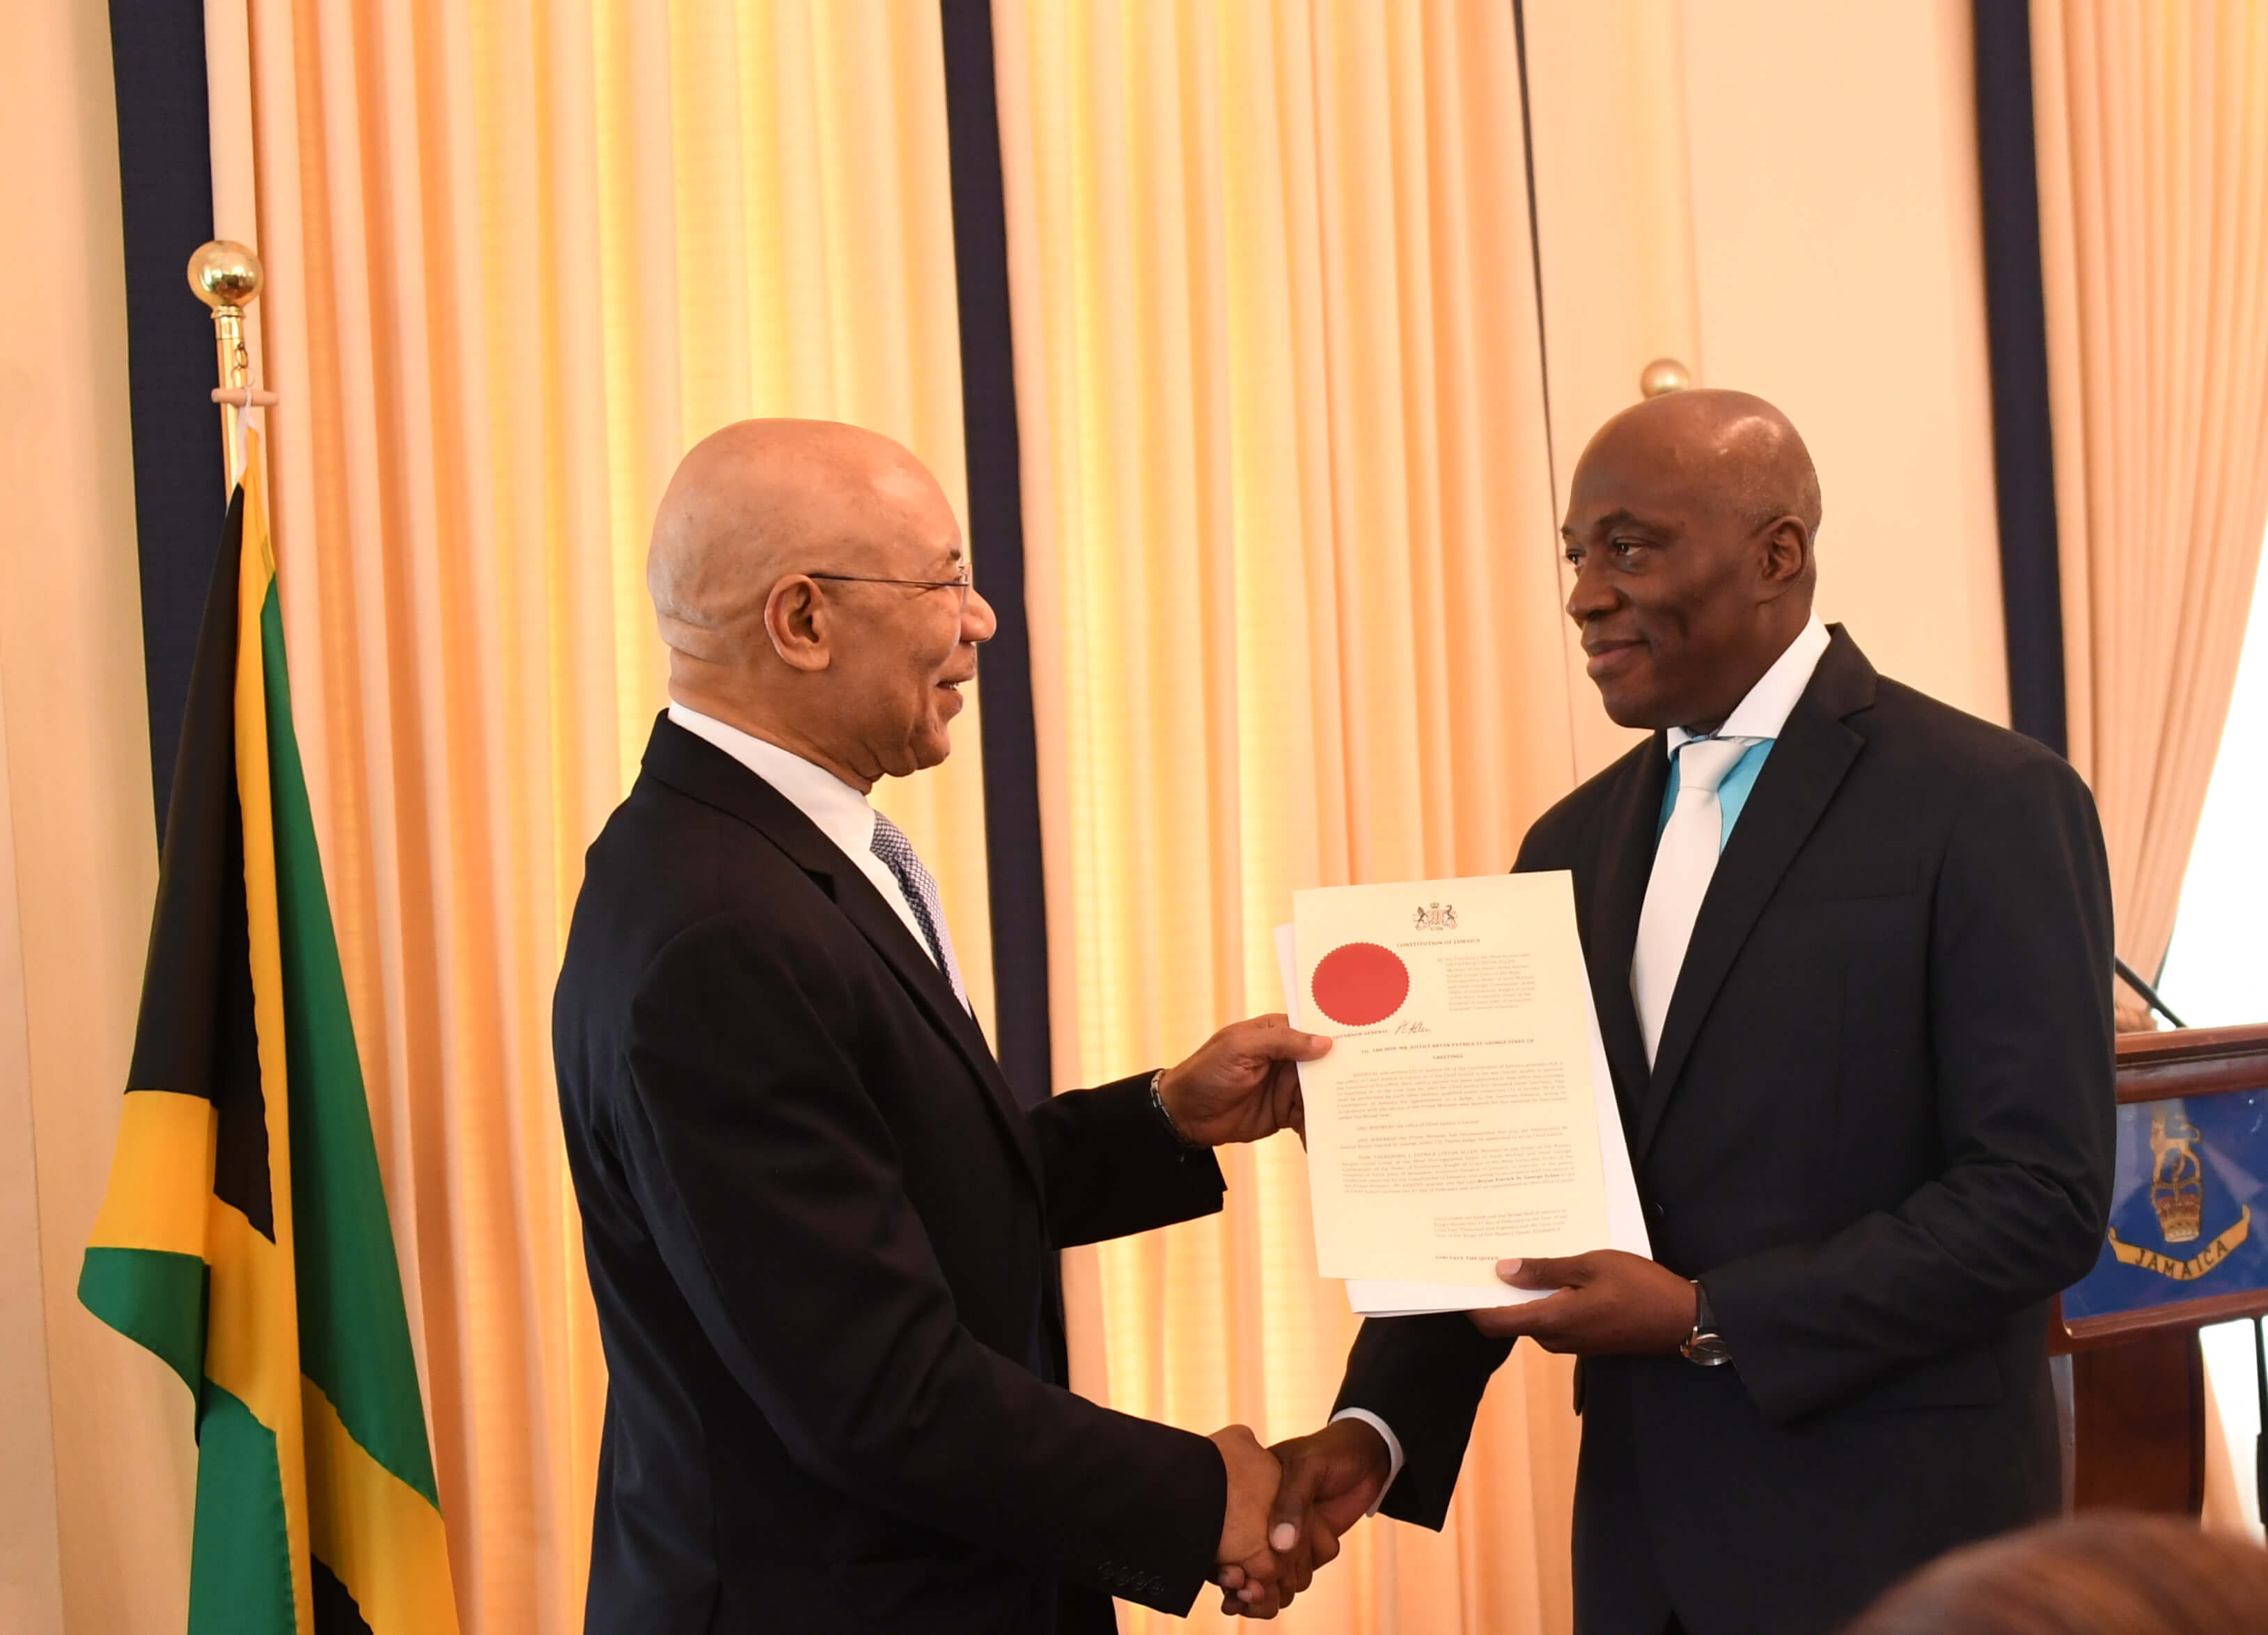 His Excellency The Governor-General presents the Honourable Mr.  Justice Bryan Sykes with his Instrument of Appointment as Chief Justice of Jamaica at a swearing-in ceremony held at King's House on February 1, 2018.